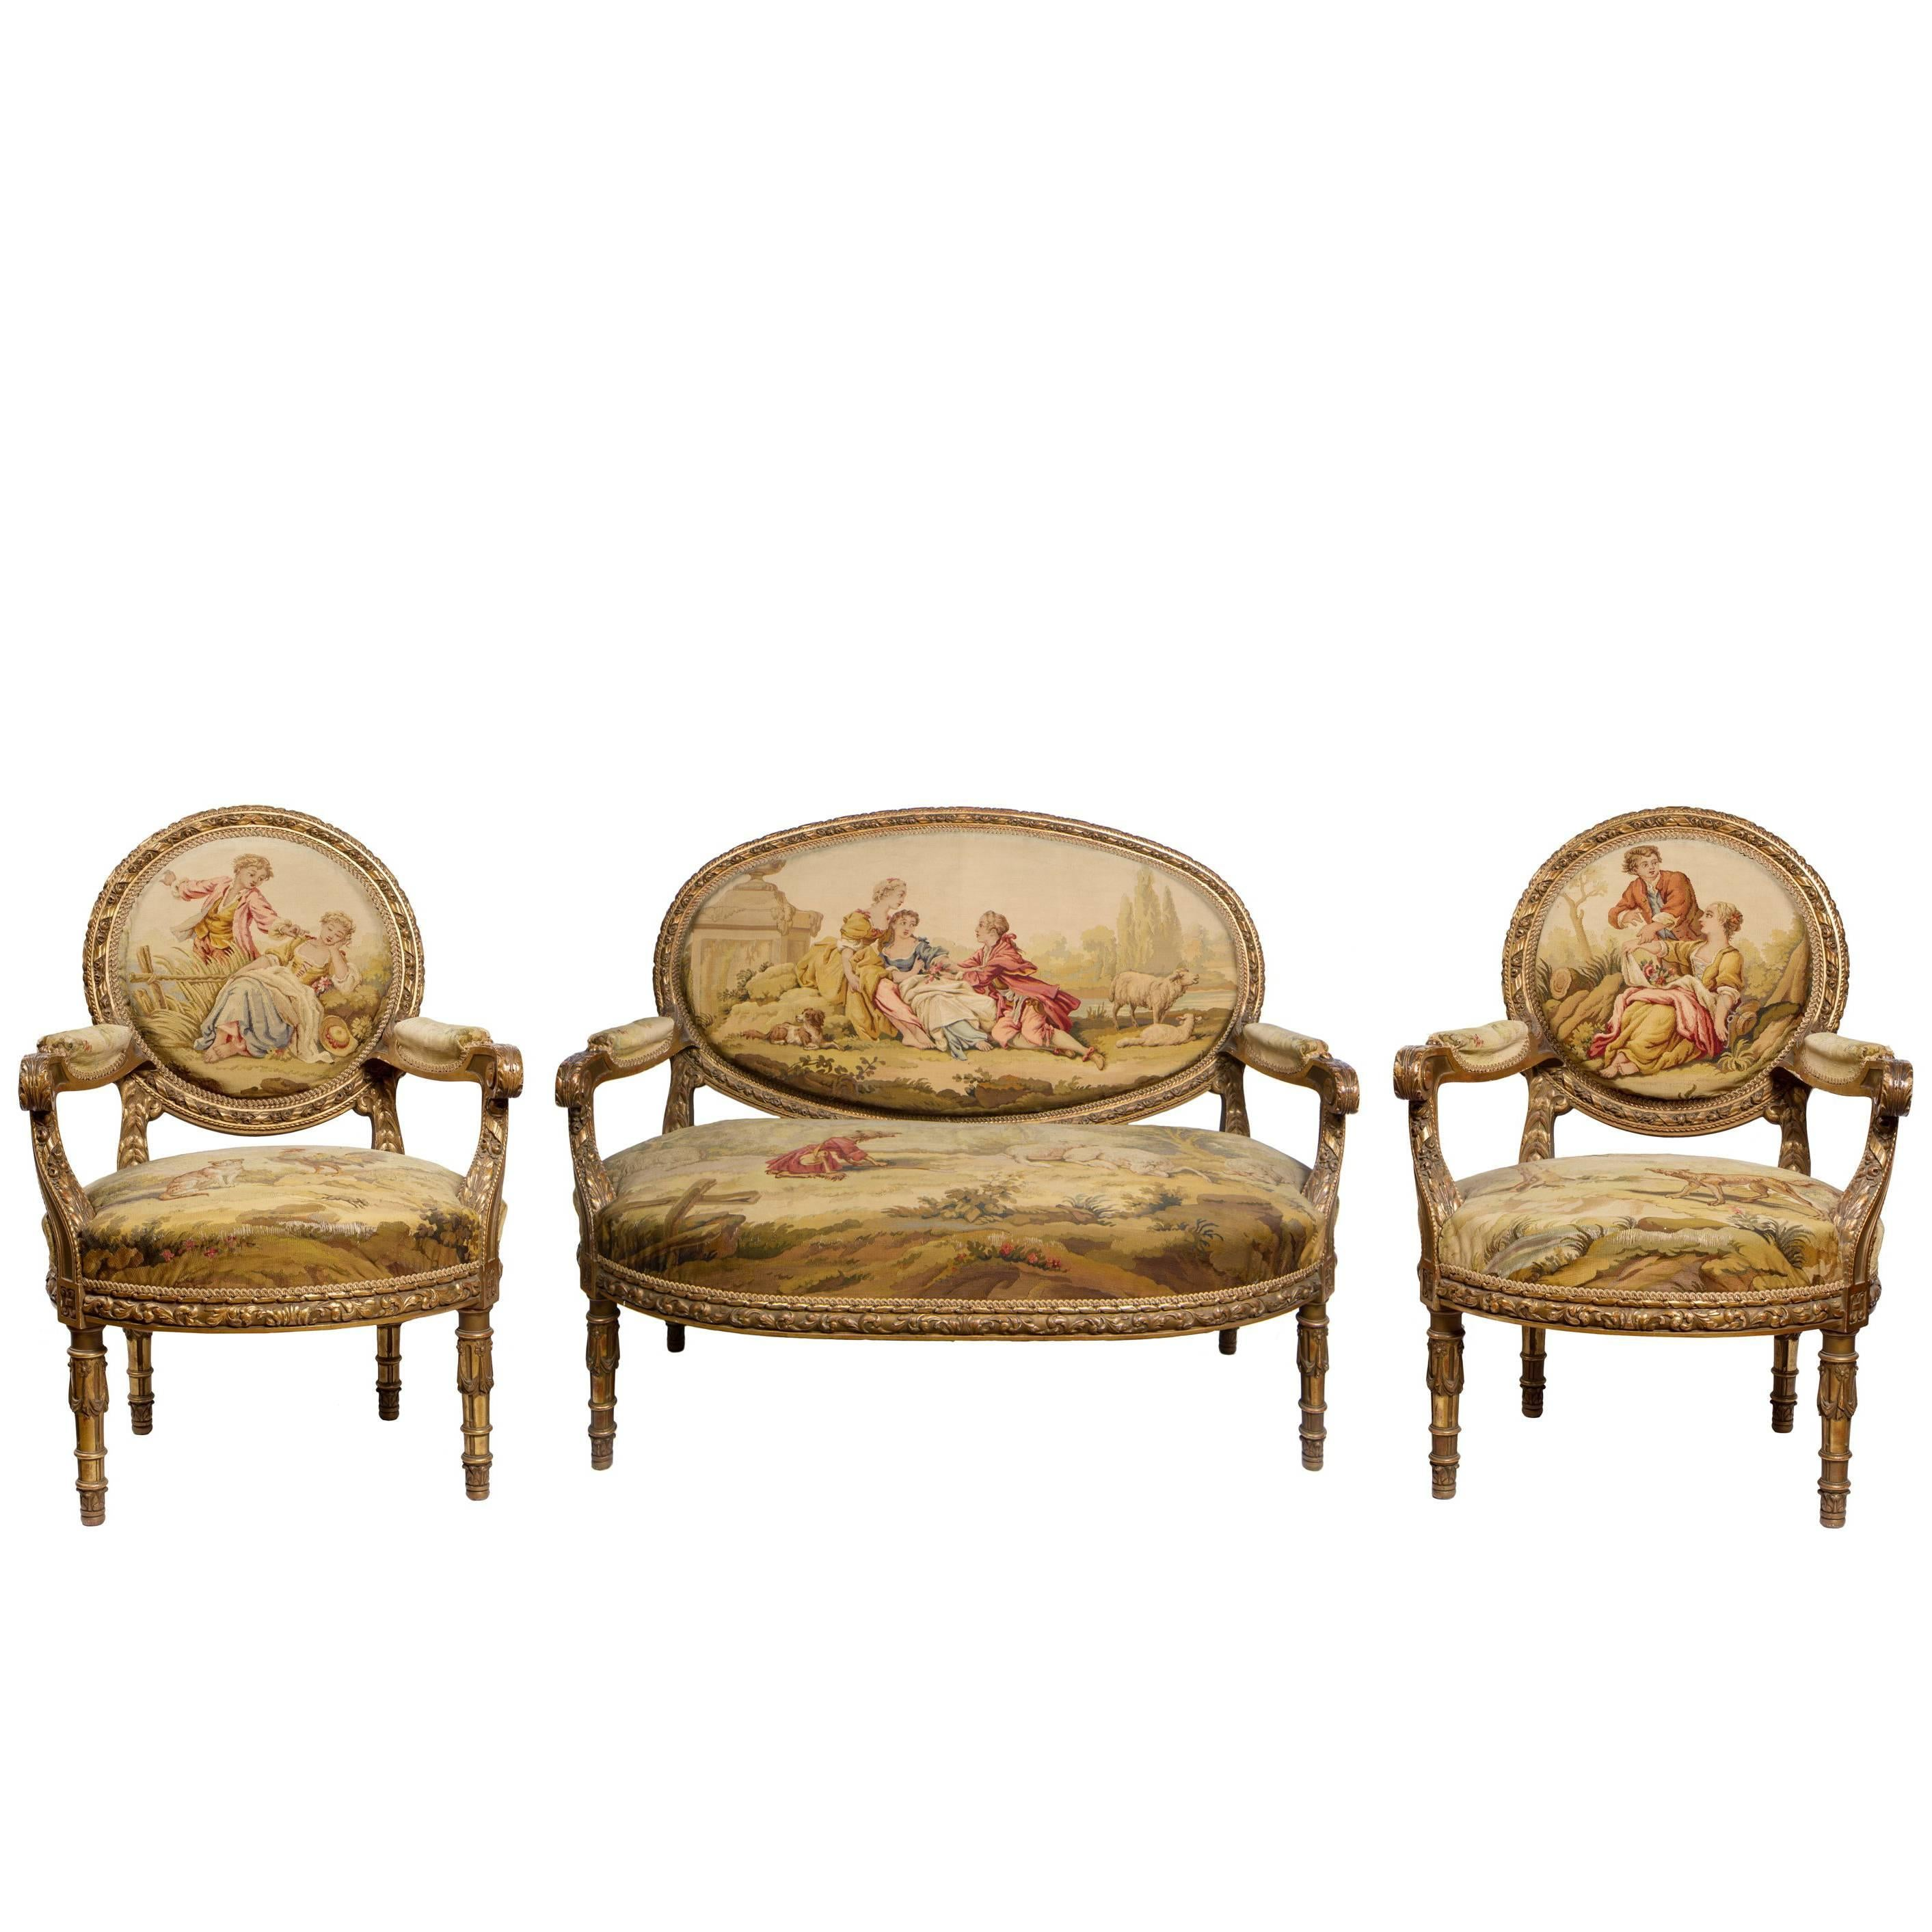 Salon Beige Org 19th Century French Aubusson Carved Giltwood Salon Suite With Settee And Chairs